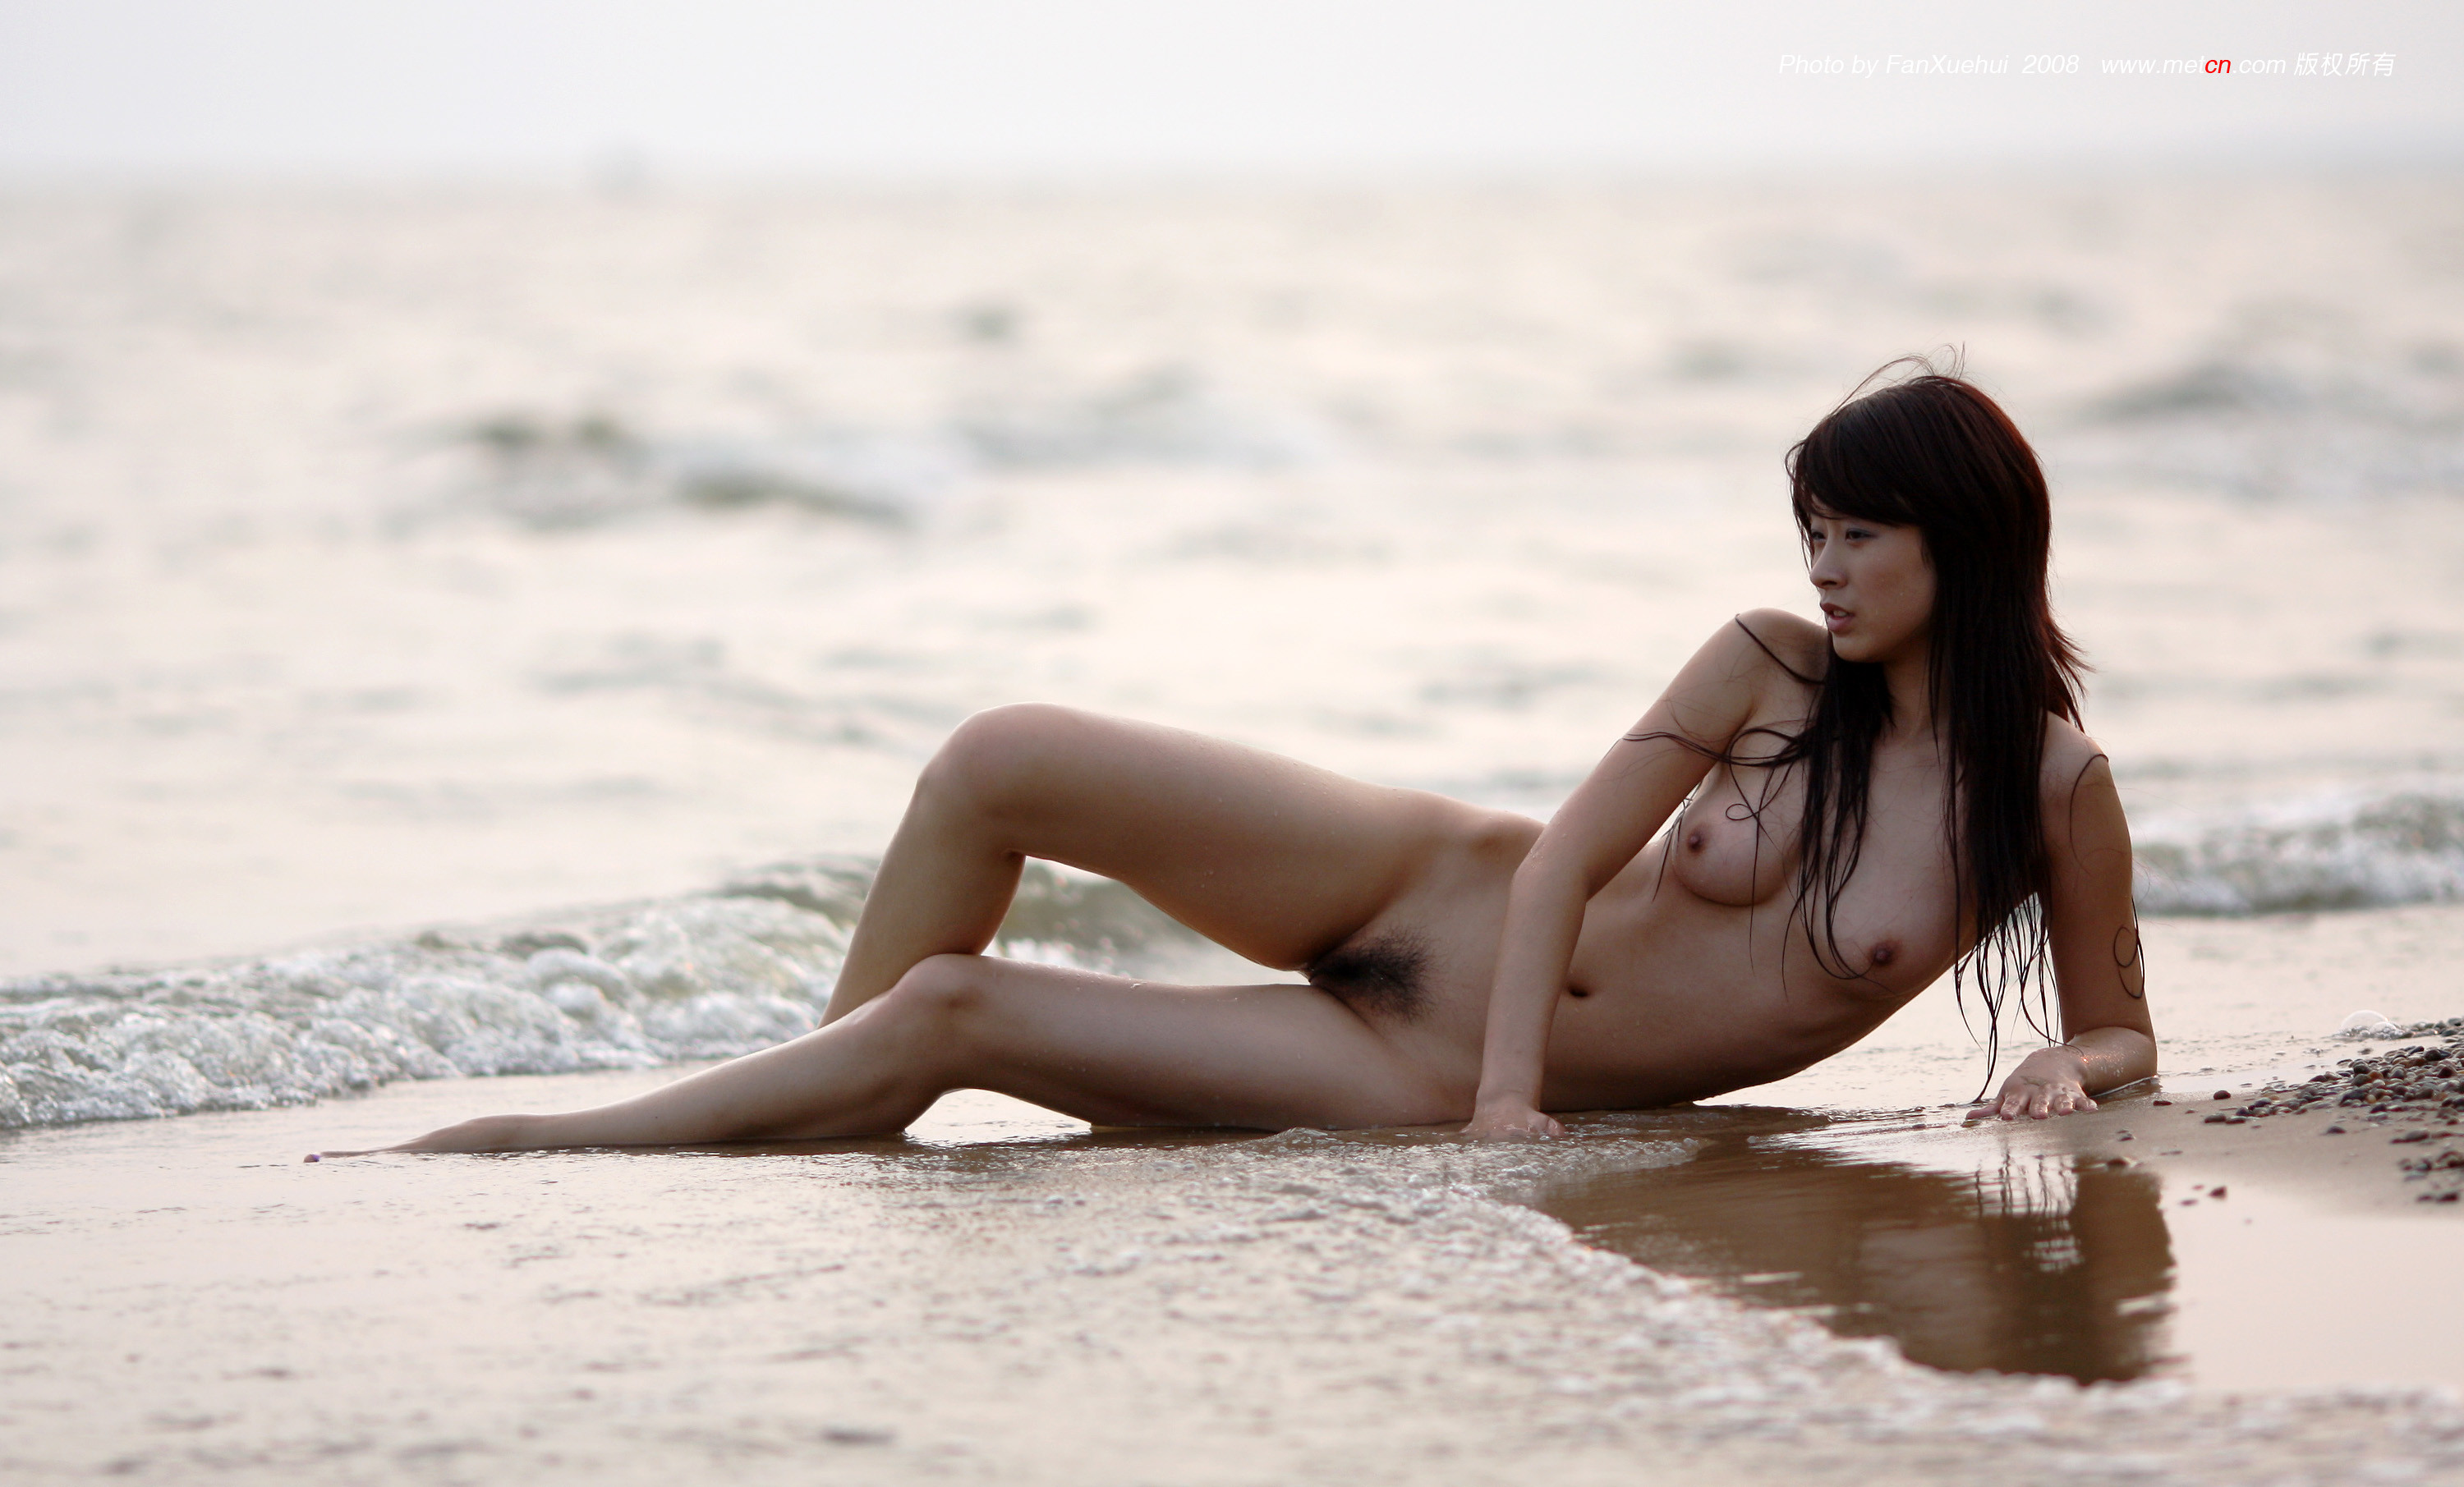 Asian naked beach girl — photo 4